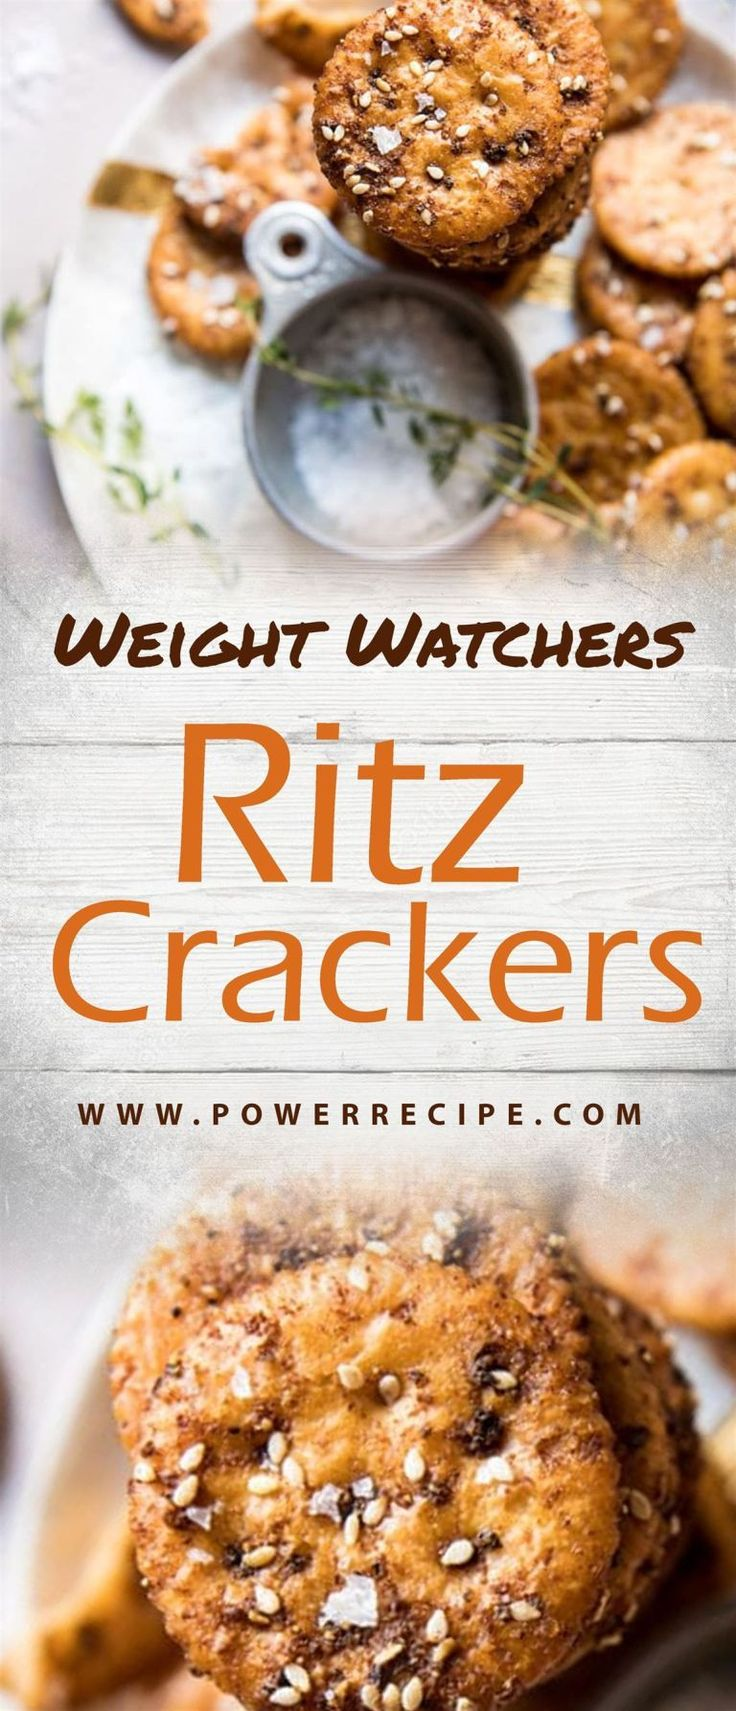 Ritz Crackers – All about Your Power Recipes